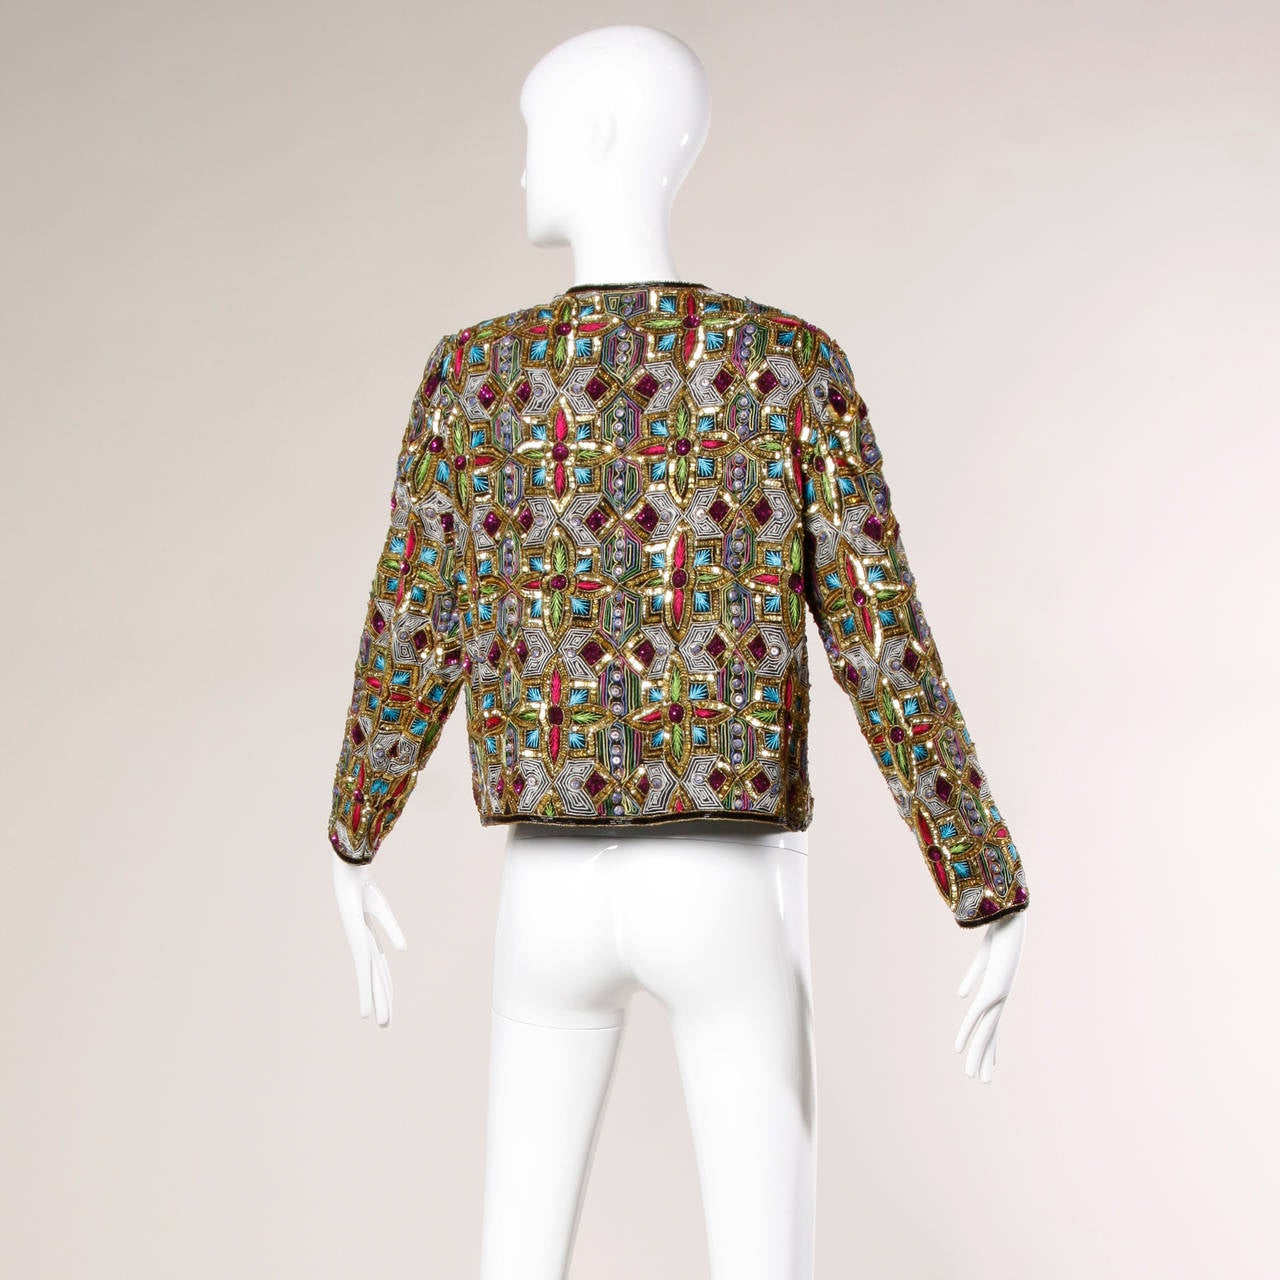 Vintage Stained Glass Sequin + Beaded Trophy Jacket 5